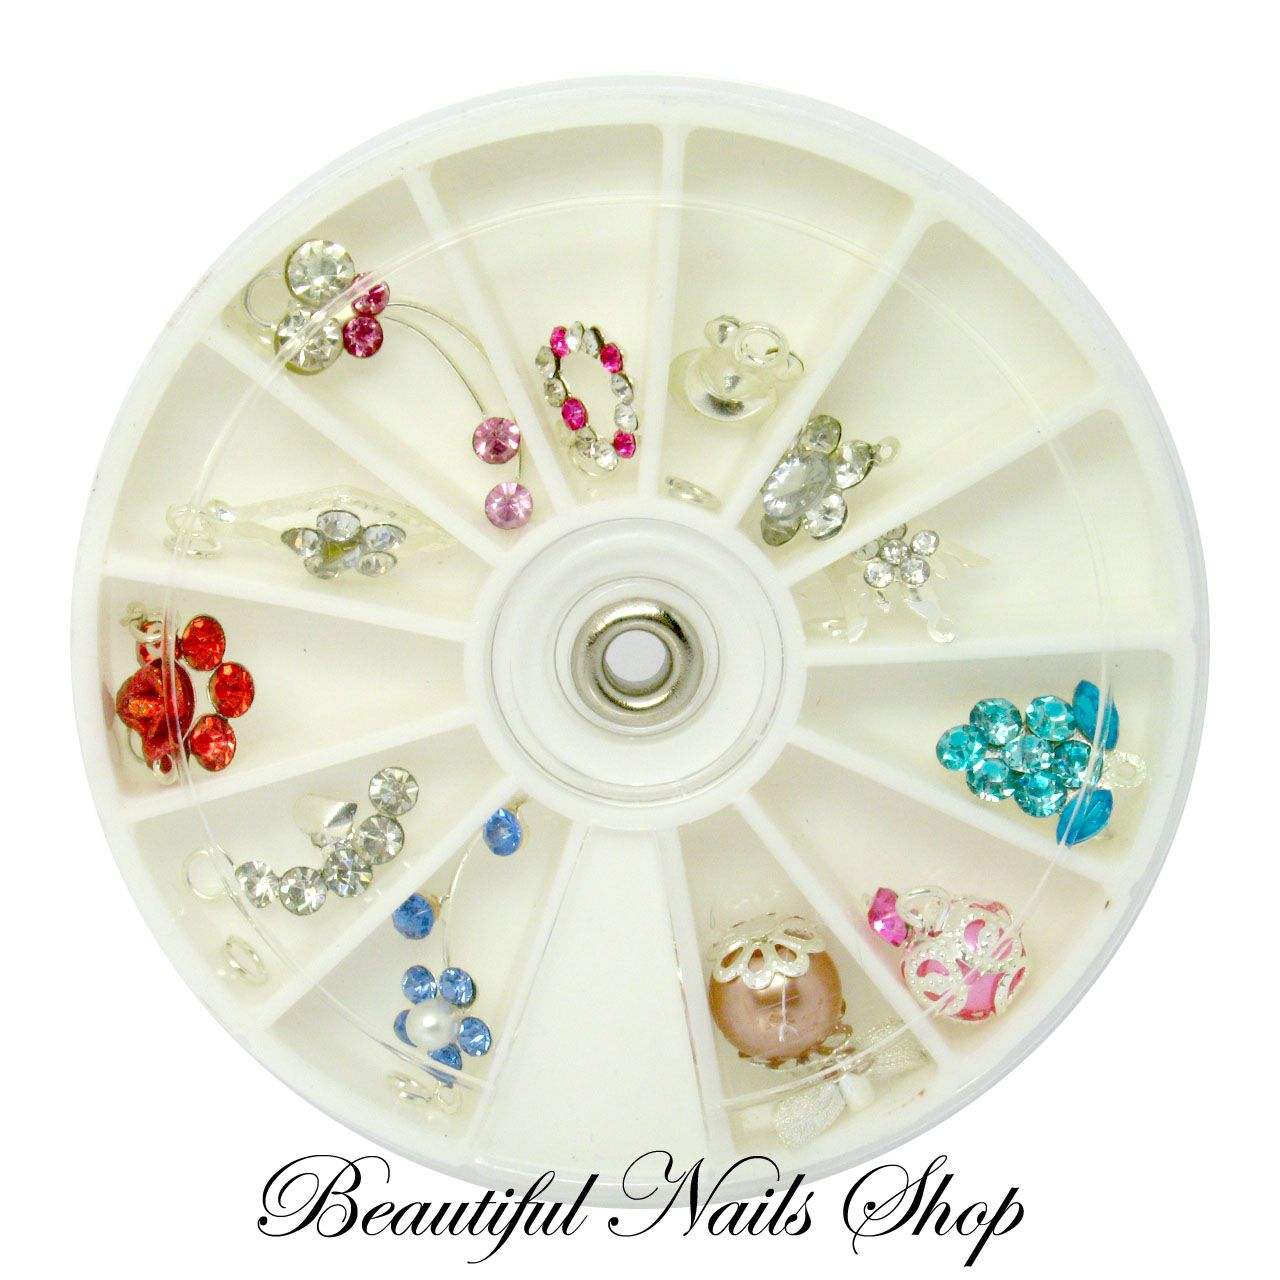 12 Nail Art Decoration Dangles Charms With Rhinestones set 3